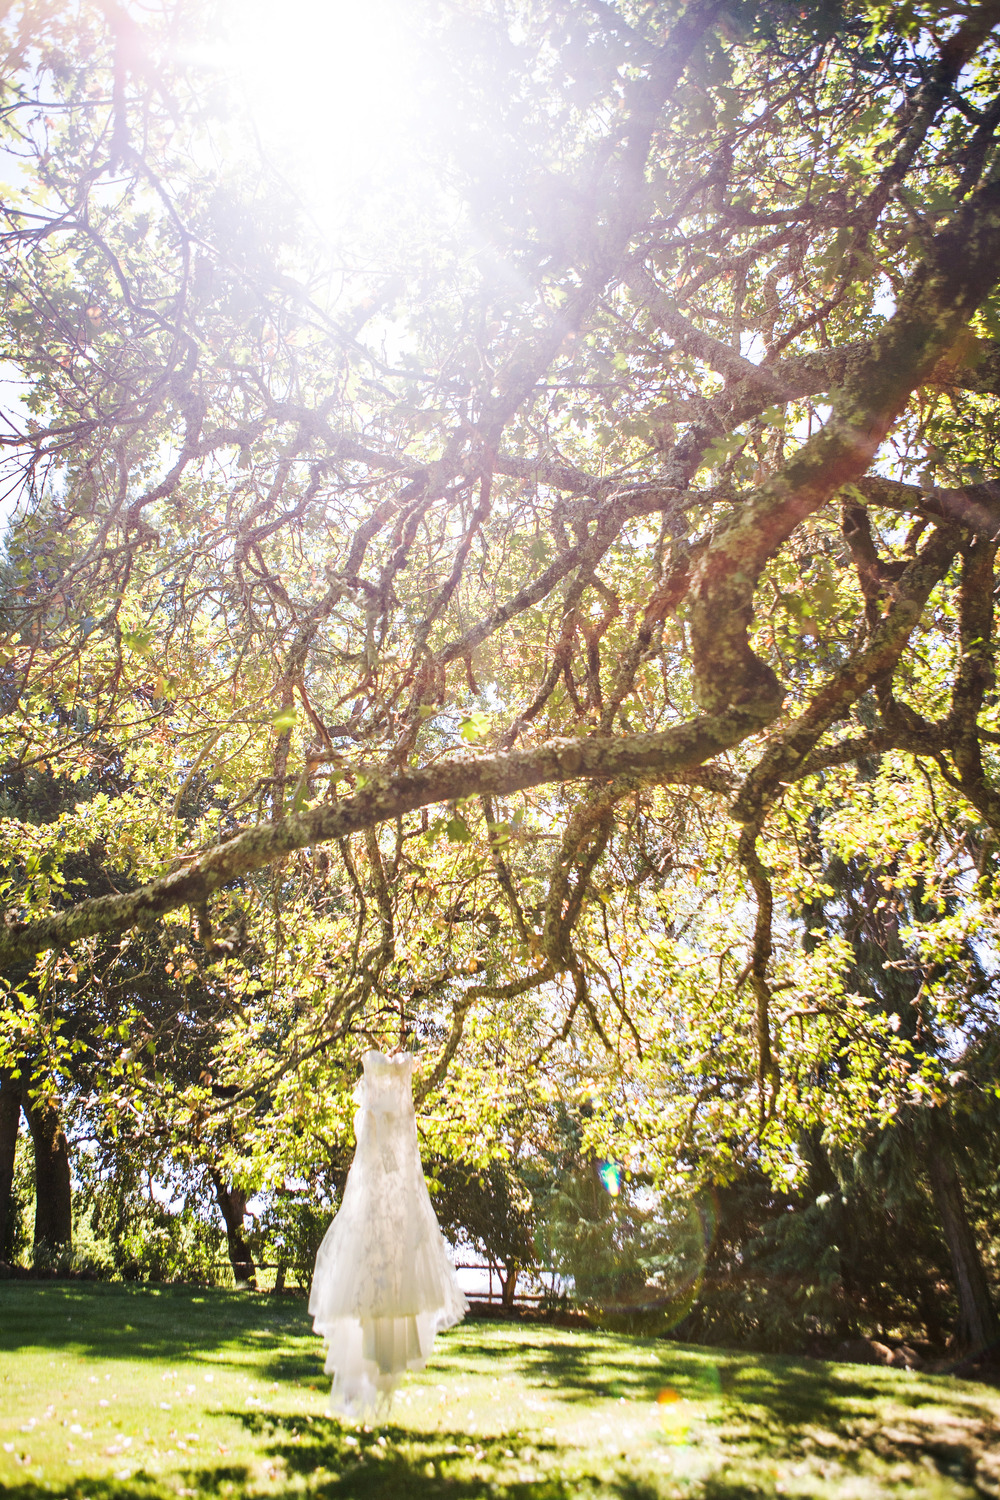 N Wedding dress in trees sonoma wedding .jpg